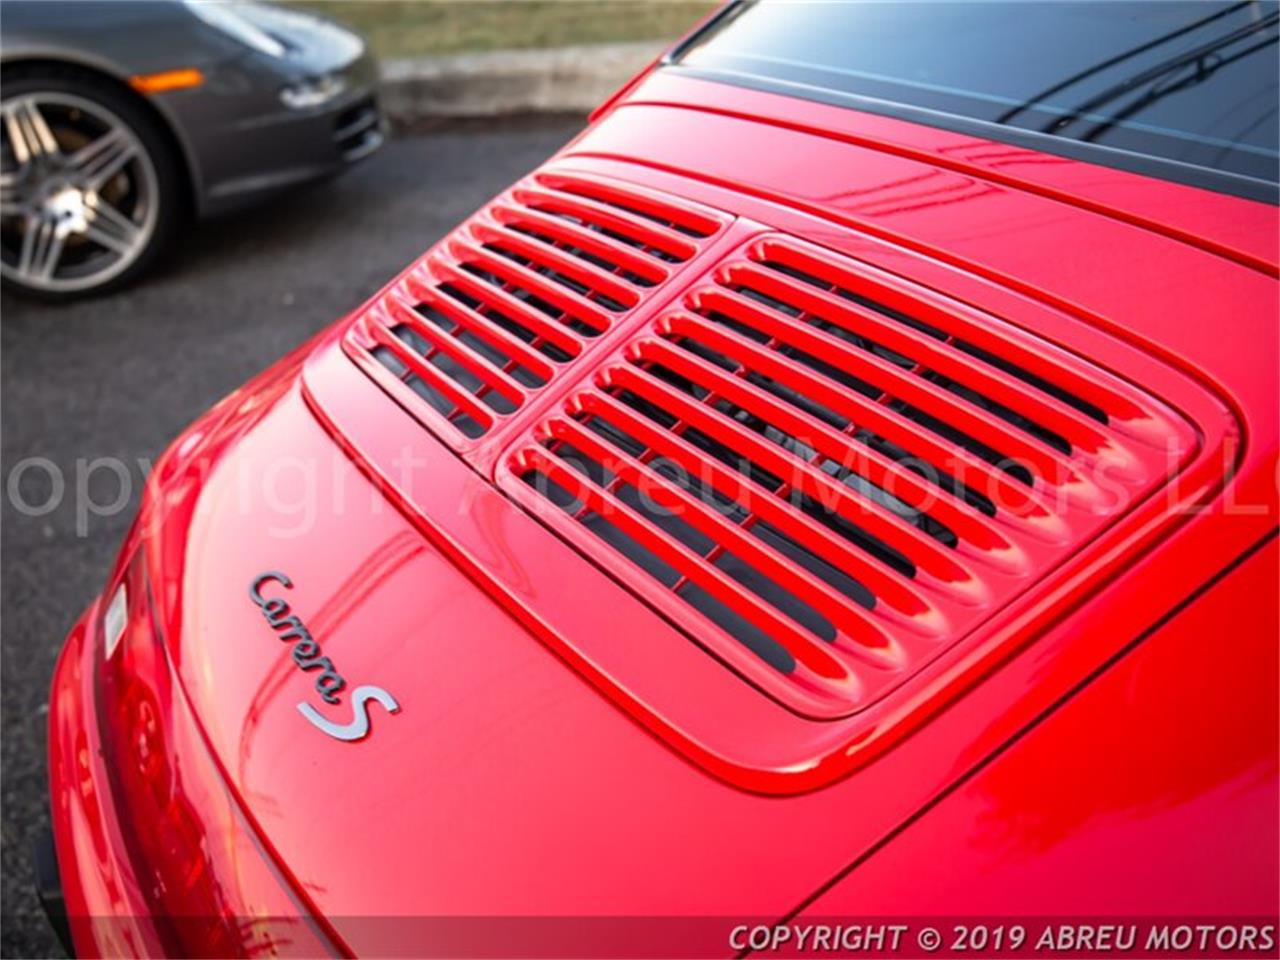 1997 Porsche 911 Carrera 2 (CC-1303071) for sale in Carmel, Indiana